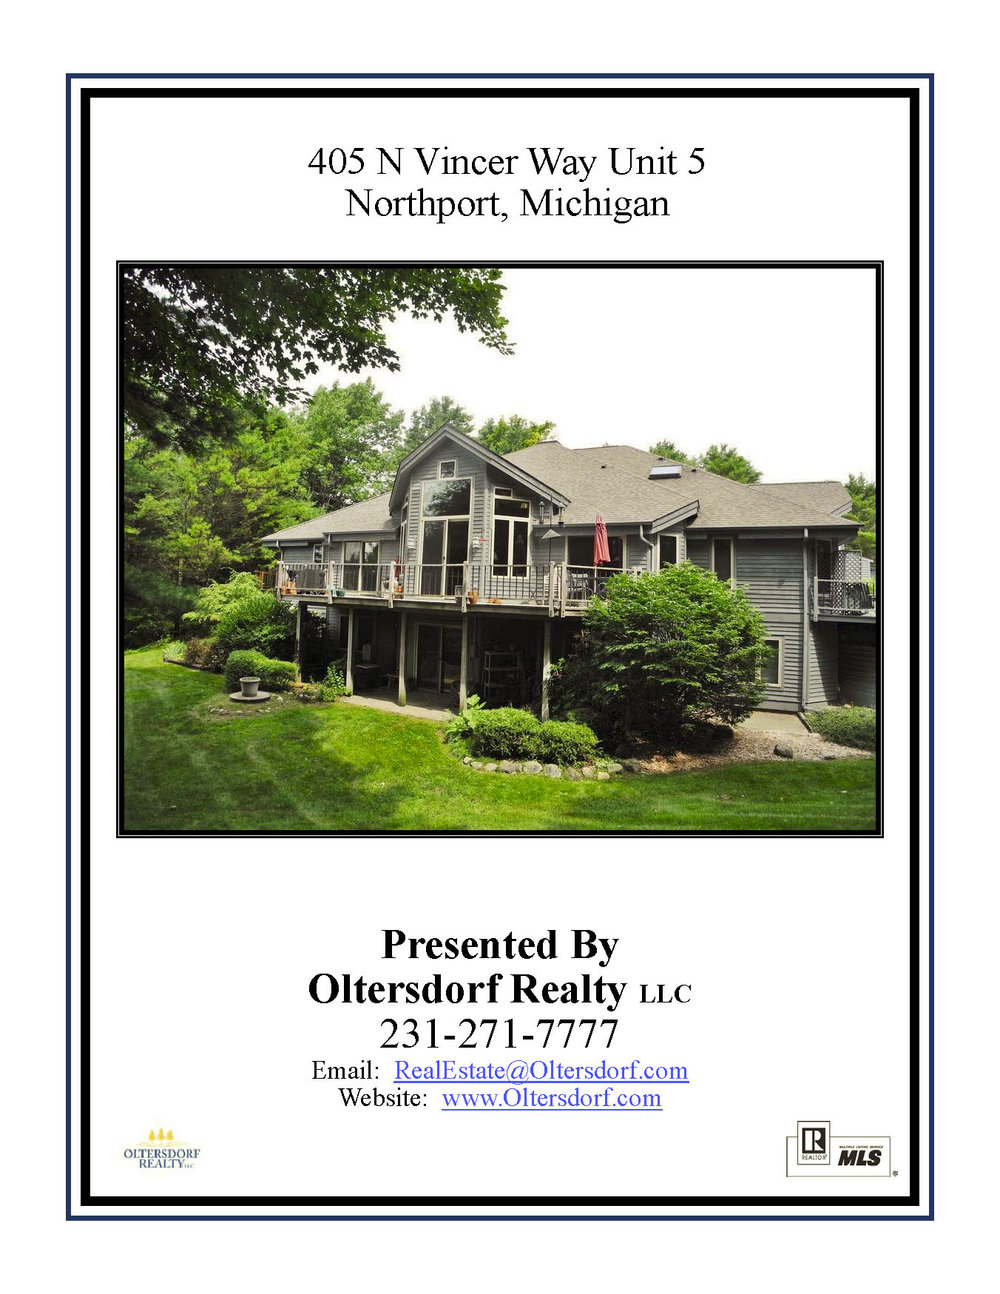 405 N Vincer Way Unit 5, Northport – FOR SALE by Oltersdorf Realty LLC - Marketing Packet (1).jpg